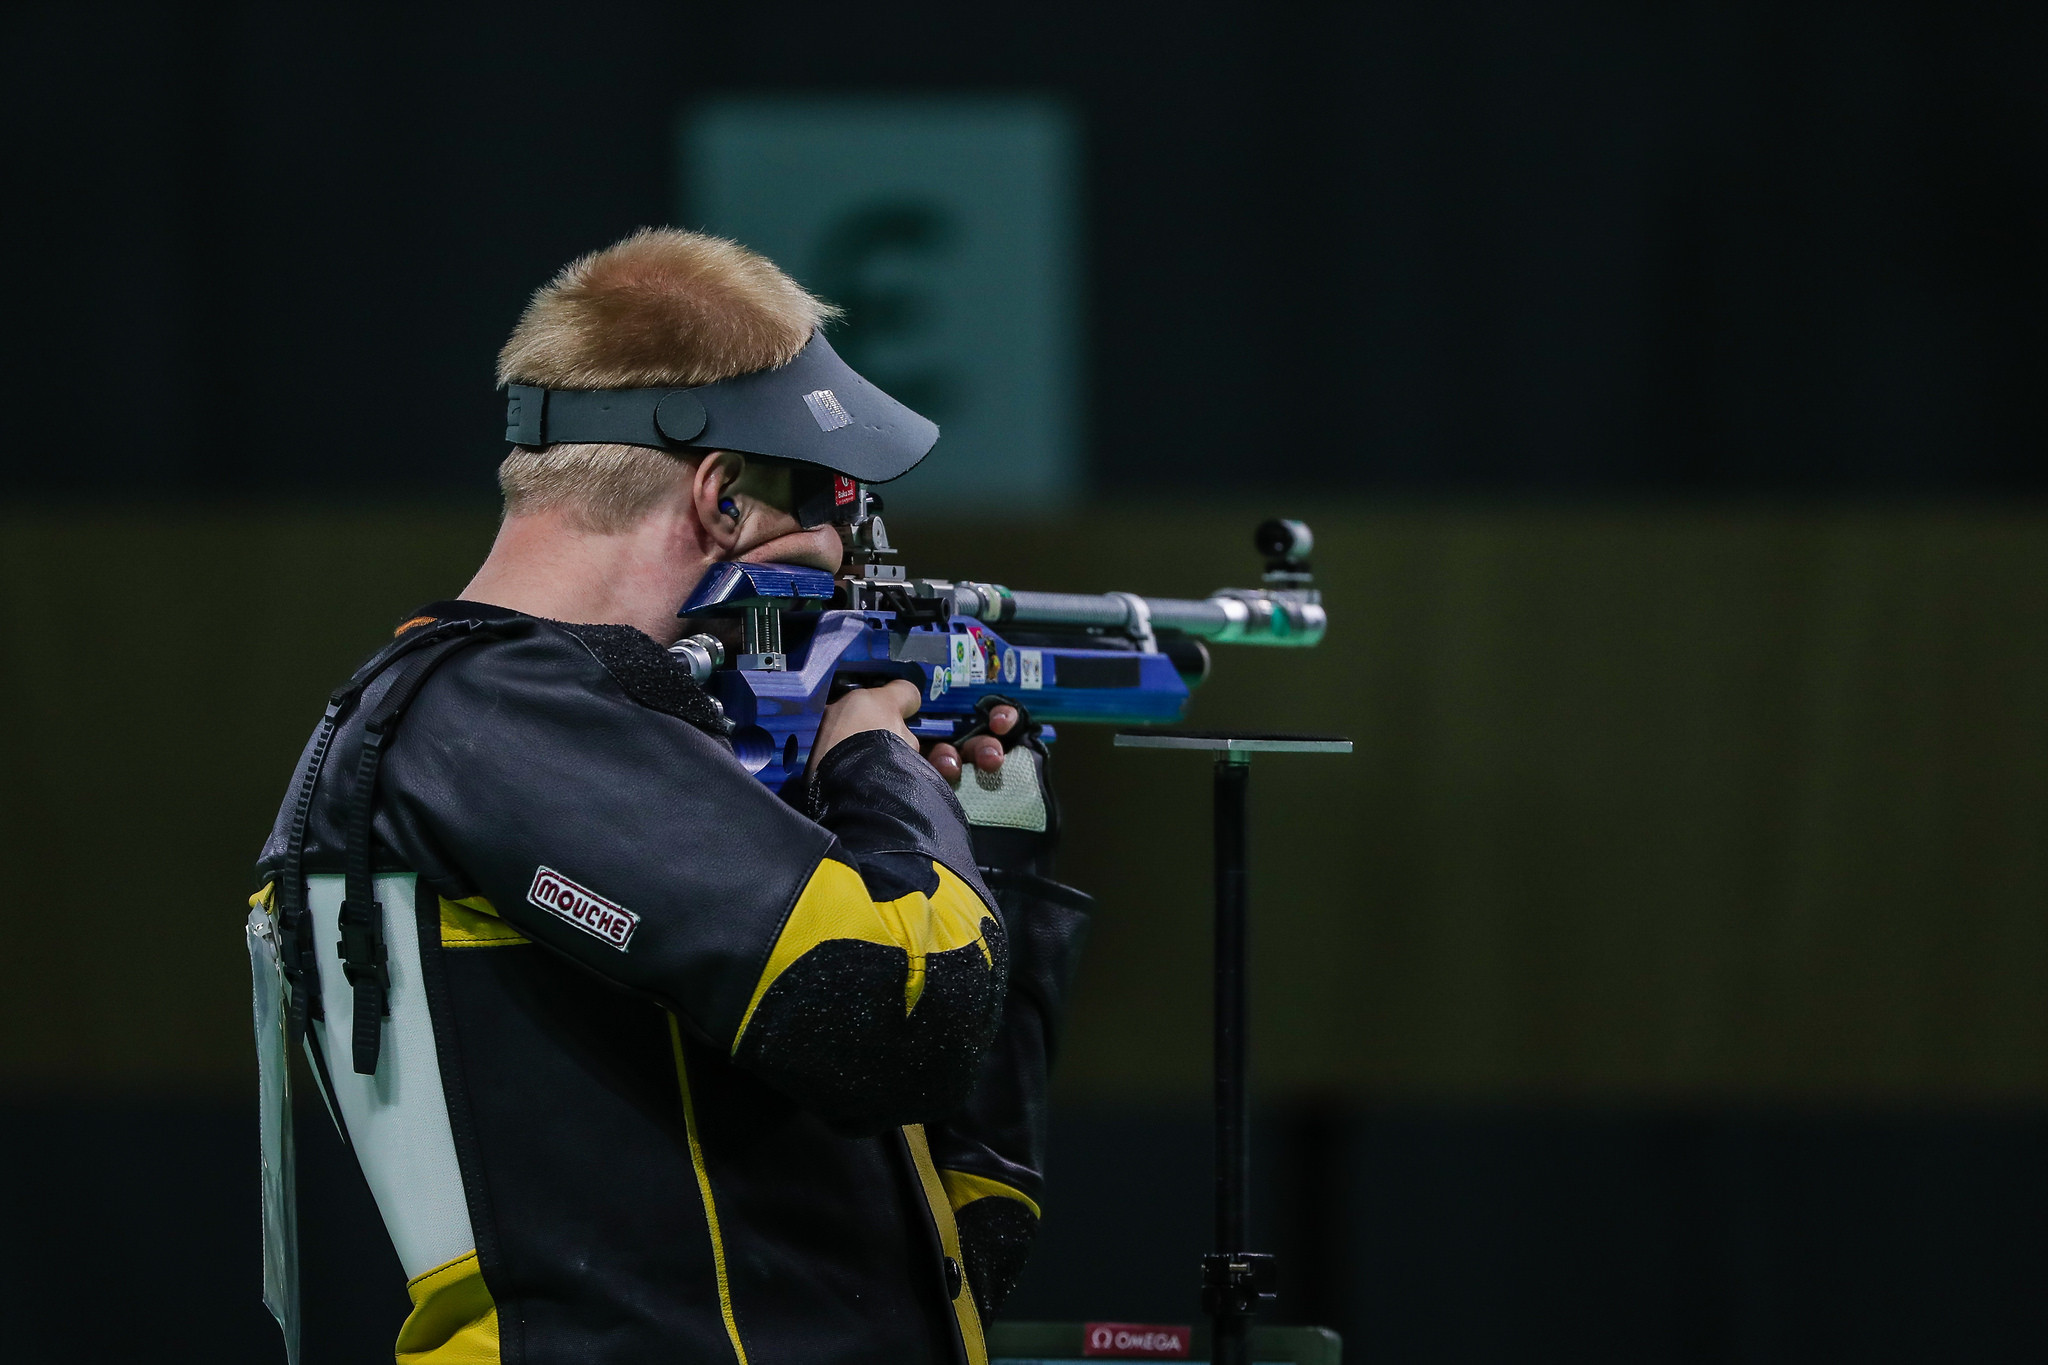 An all-event package for shooting shotgun and shooting rifle and pistol events at the 2019 European Games in Minsk has gone on sale due to high demand for tickets ©Minsk 2019